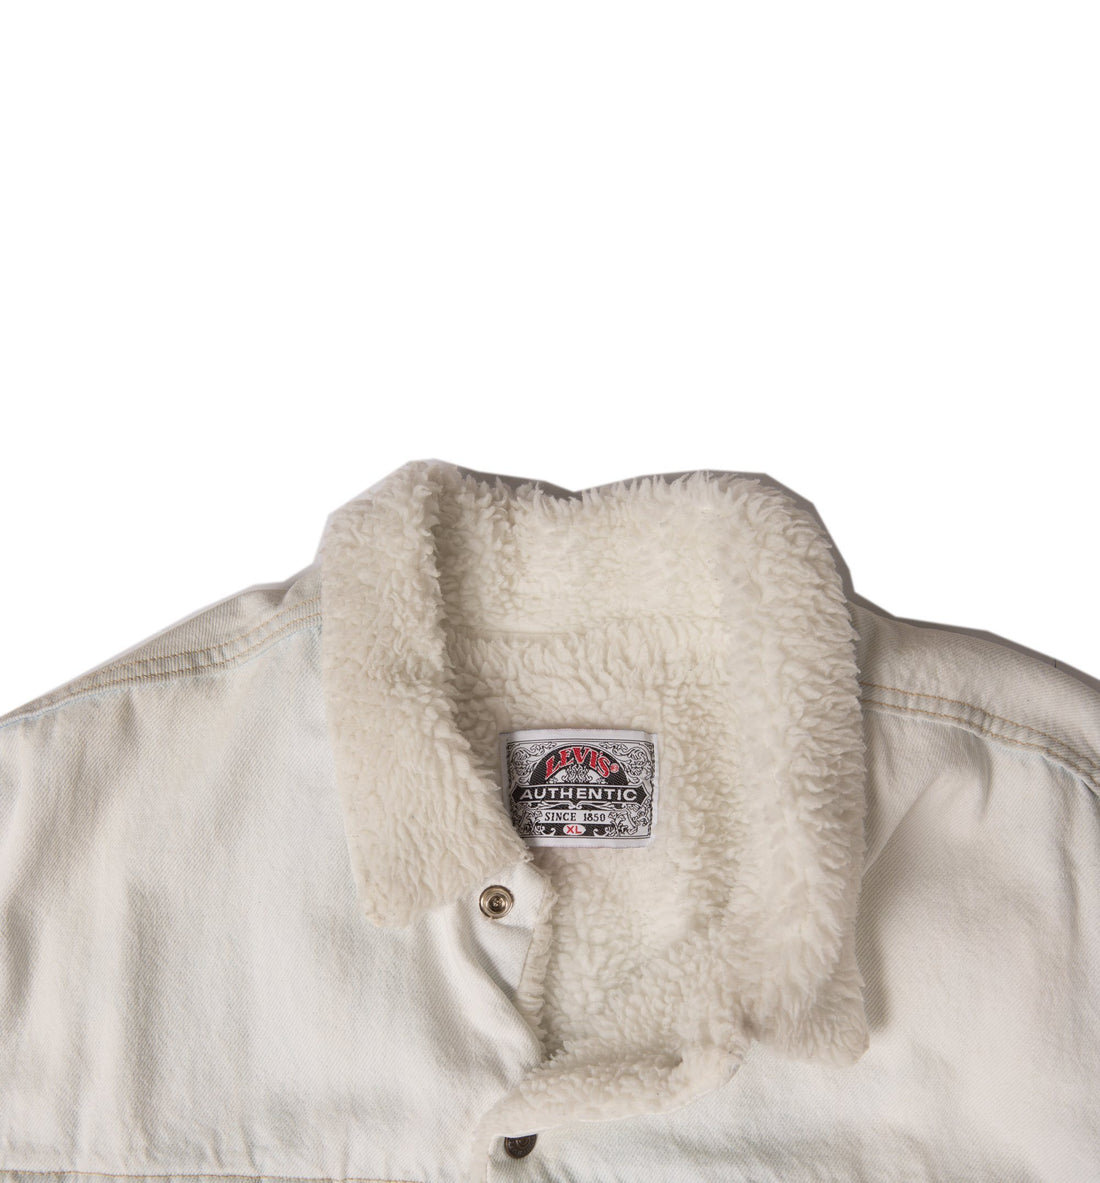 Vintage 80's White Levis Sherpa lined Jacket - Vintage - Iron and Resin